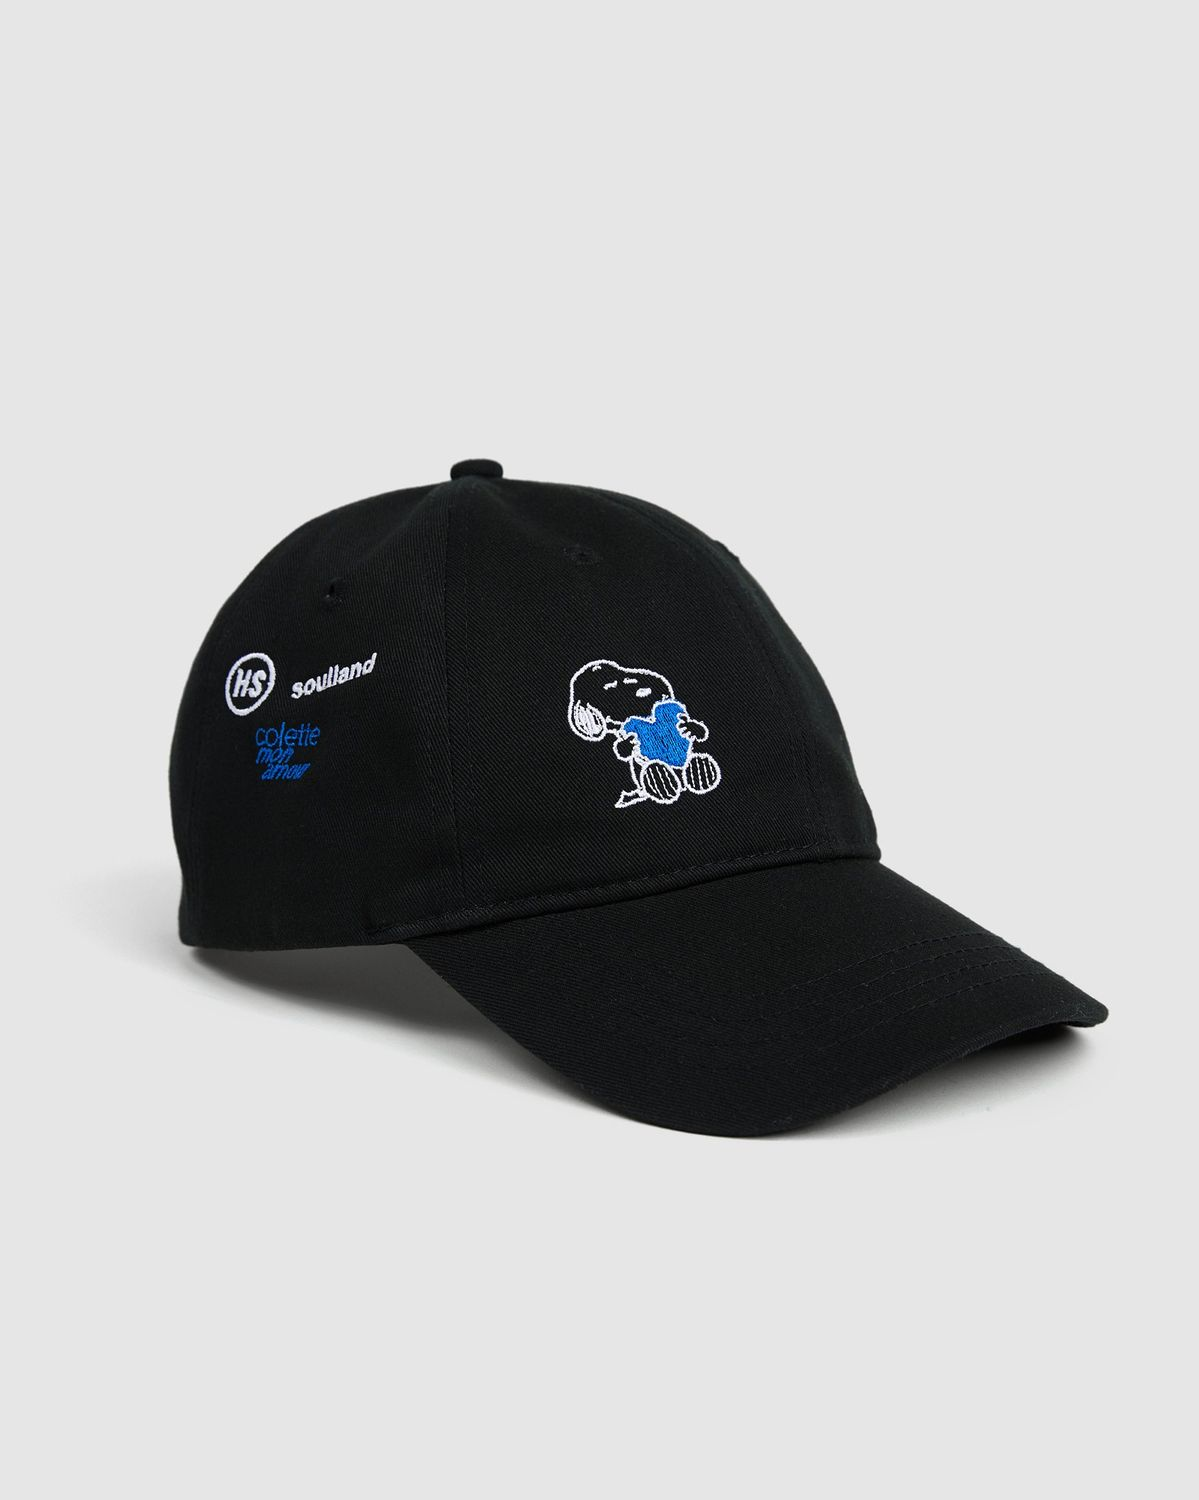 Colette Mon Amour x Soulland -  Snoopy Heart Black Baseball Cap - Image 1